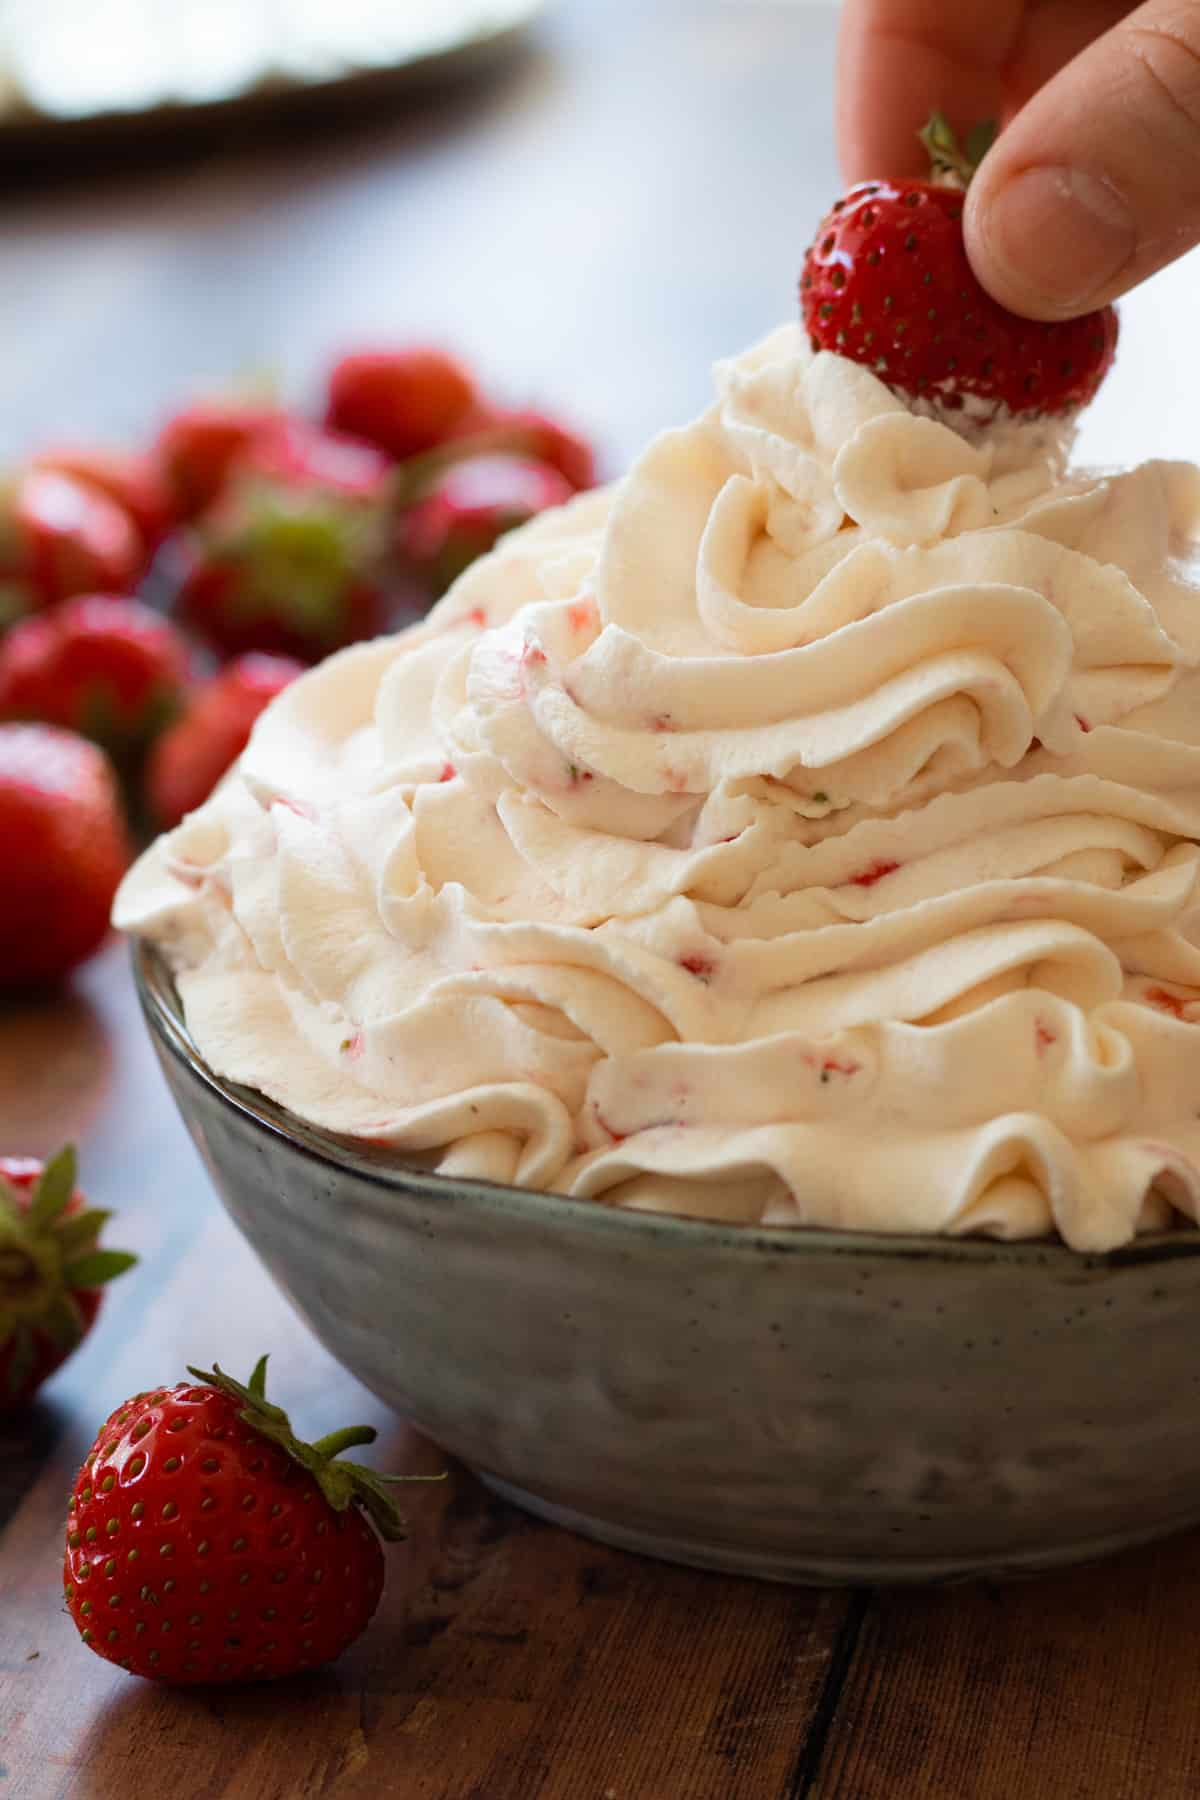 strawberry whipped cream in a bowl topped with a strawberry